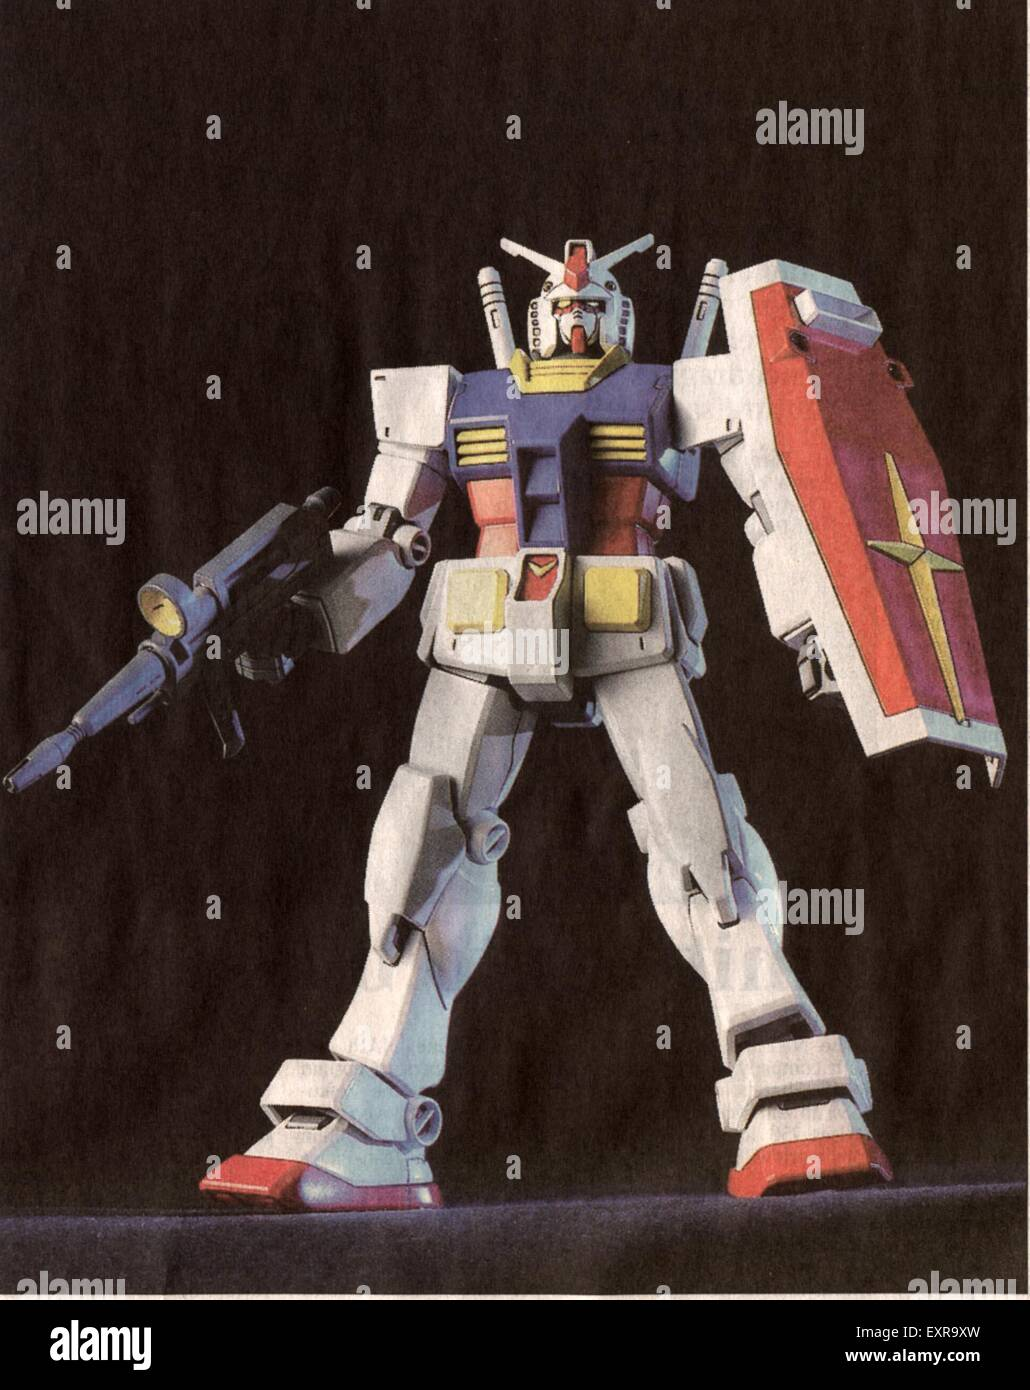 1990s UK Transformers Promotional - Stock Image